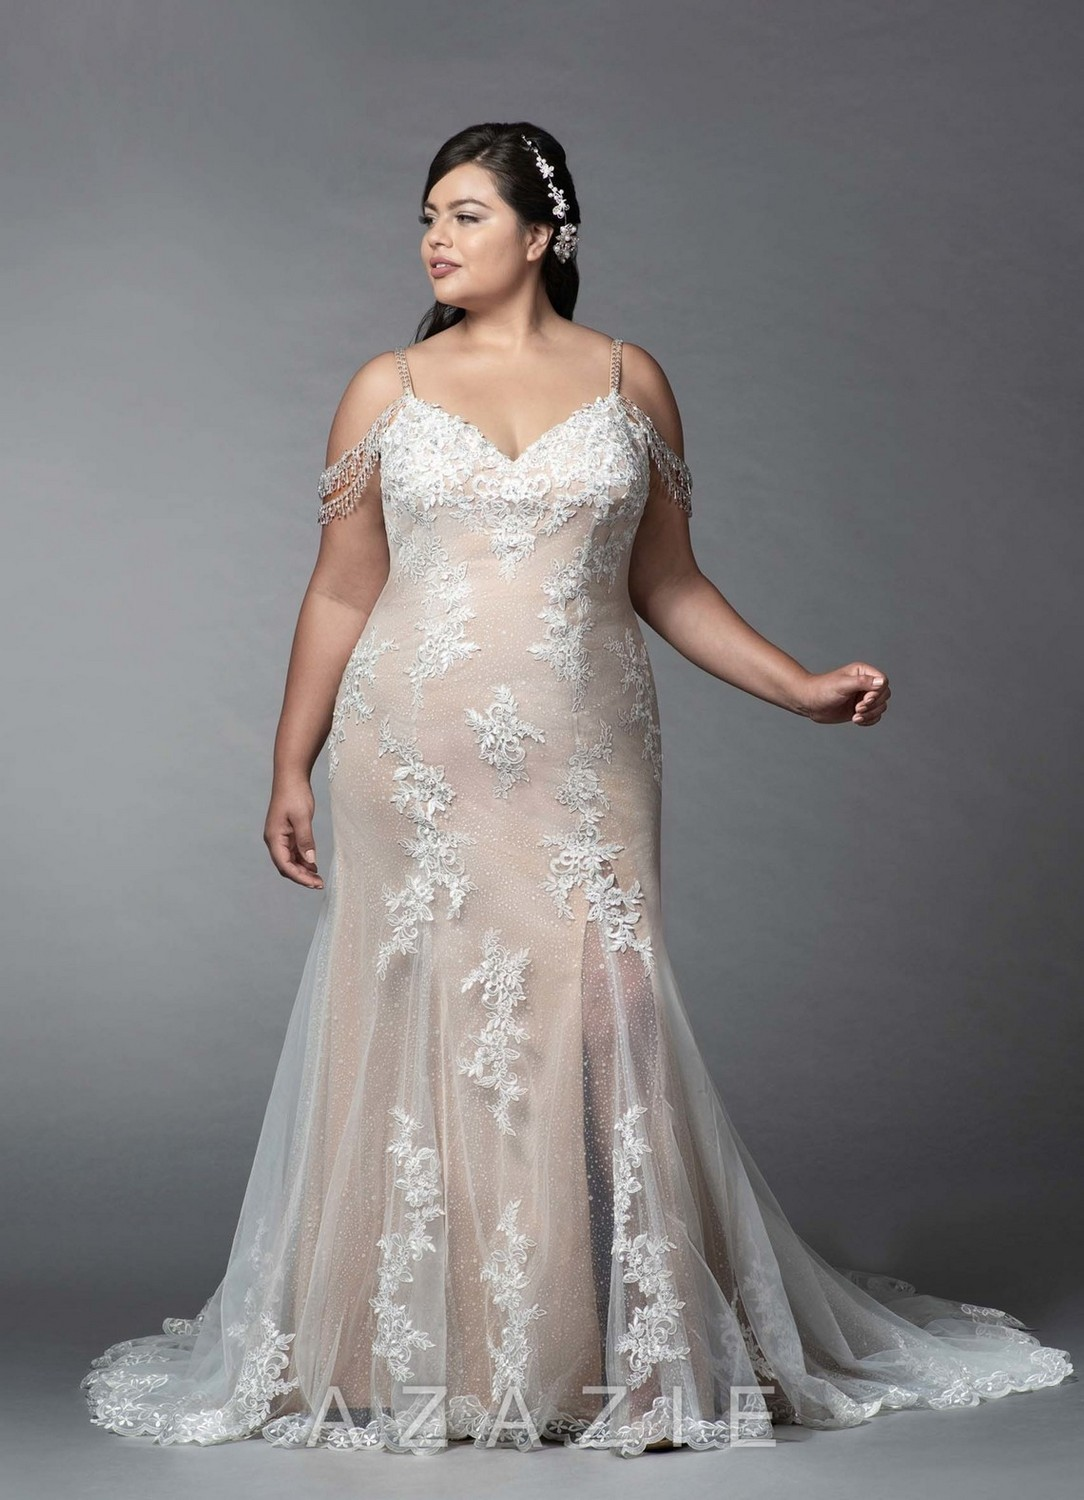 Saskia Plus Size Wedding Dress at Azazie